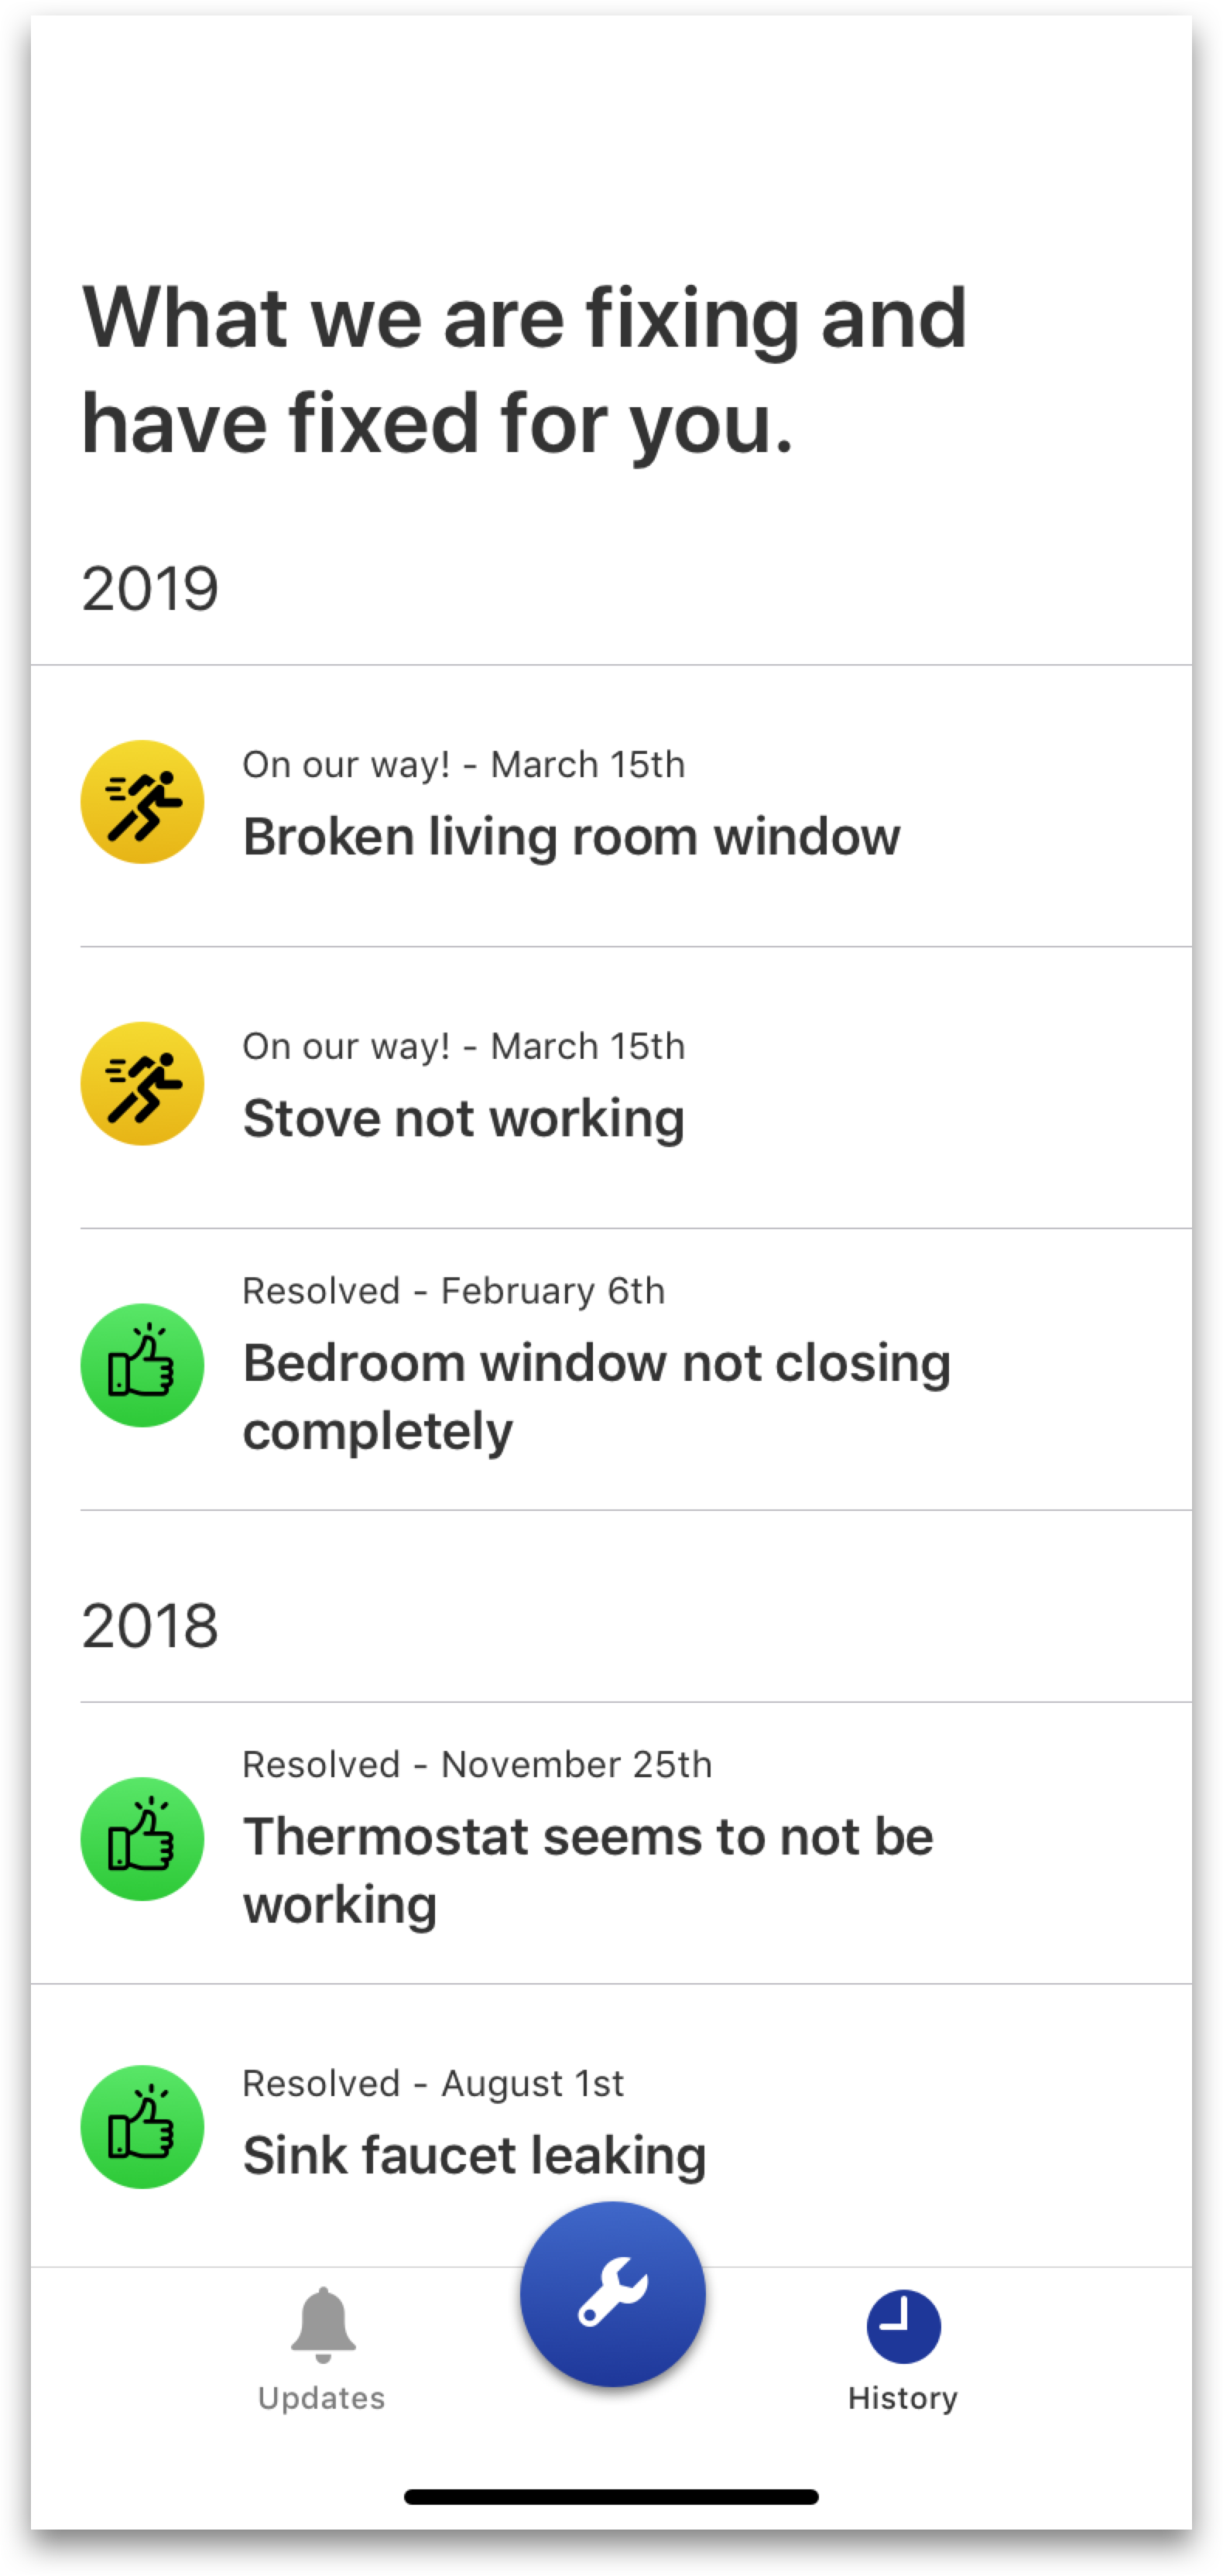 I used a caption-style text as the first line to show the request status and date. - I also made the dates clearer (3/15 vs March 15th) and used a smaller shape (circles over rectangles) with an indicative icon.